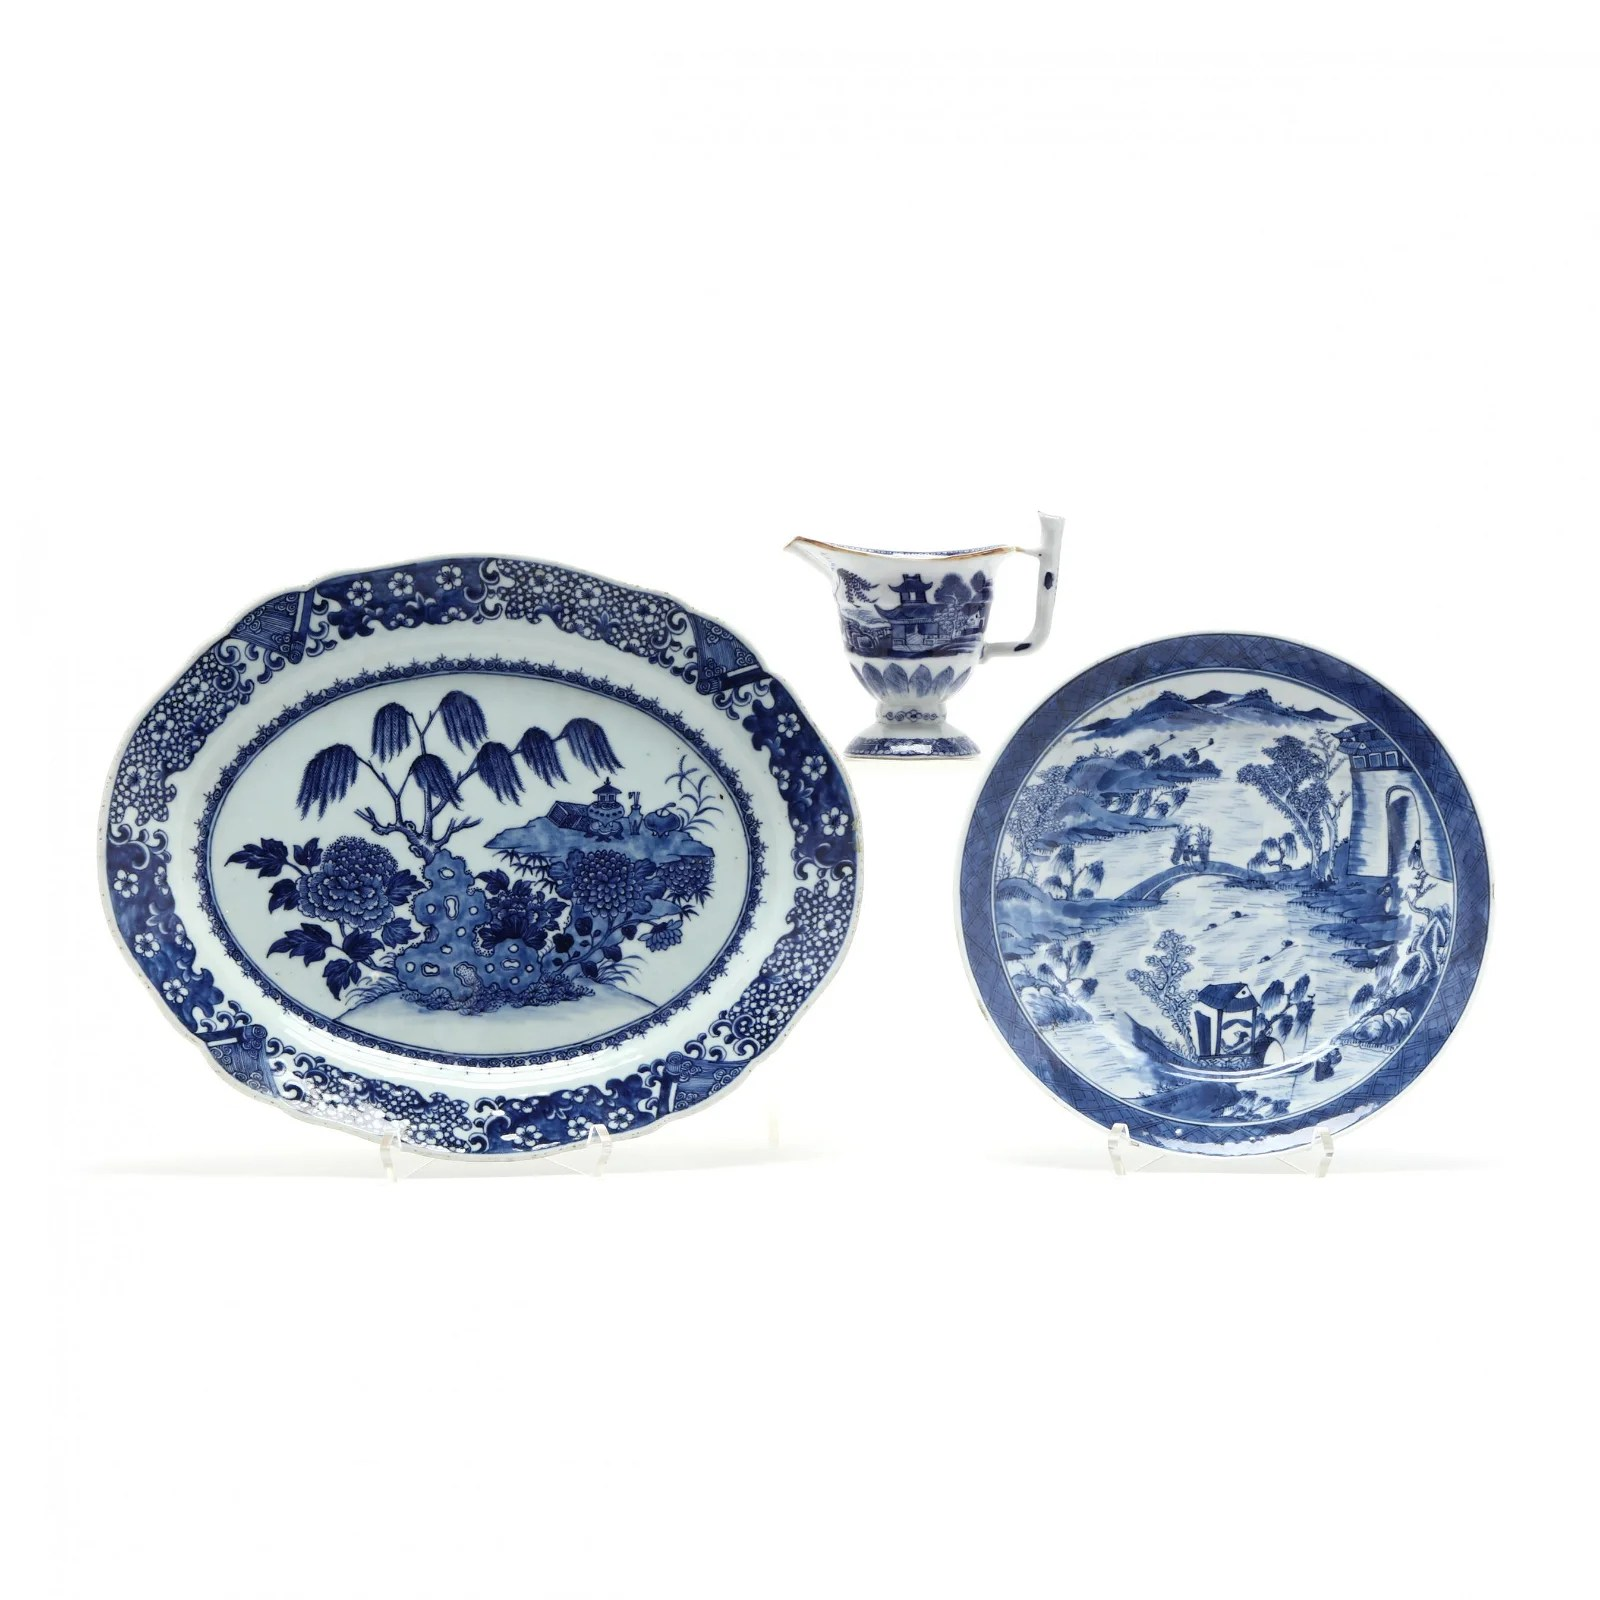 Three Chinese Export Porcelains, Blue and White Designs